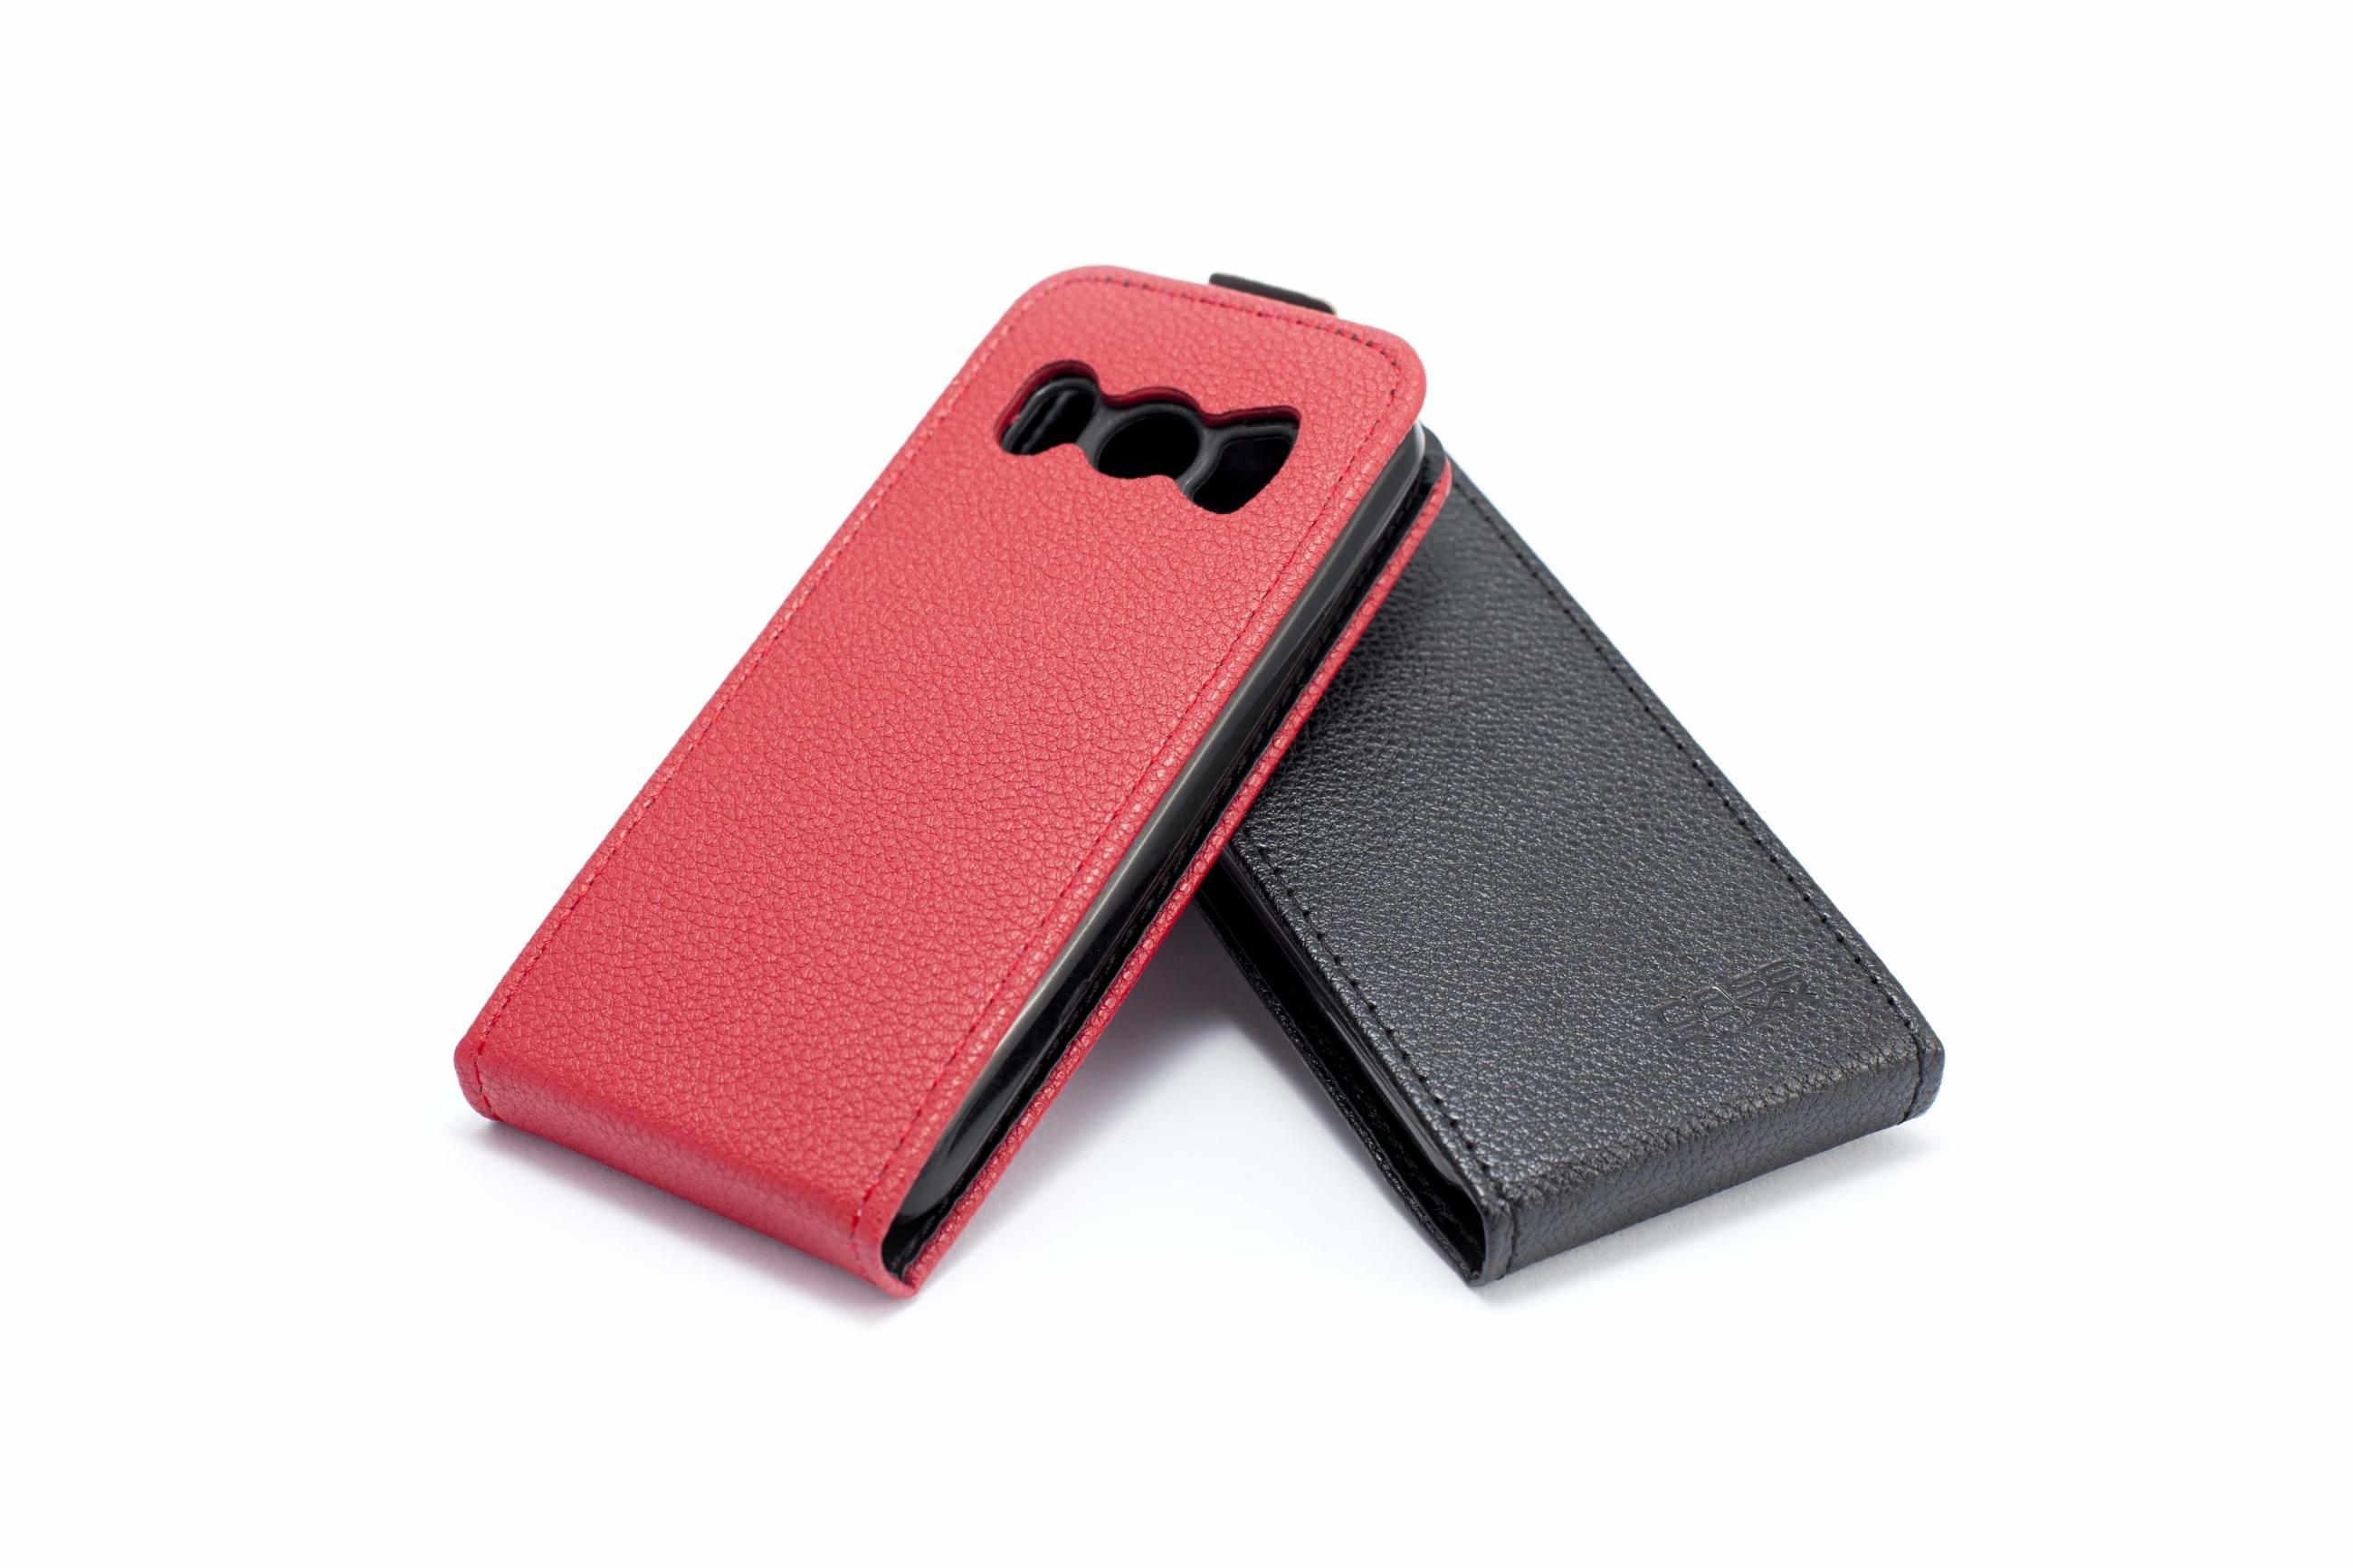 Blindshell Classic and Blindshell Classic LITE - Protective flip case in black and red